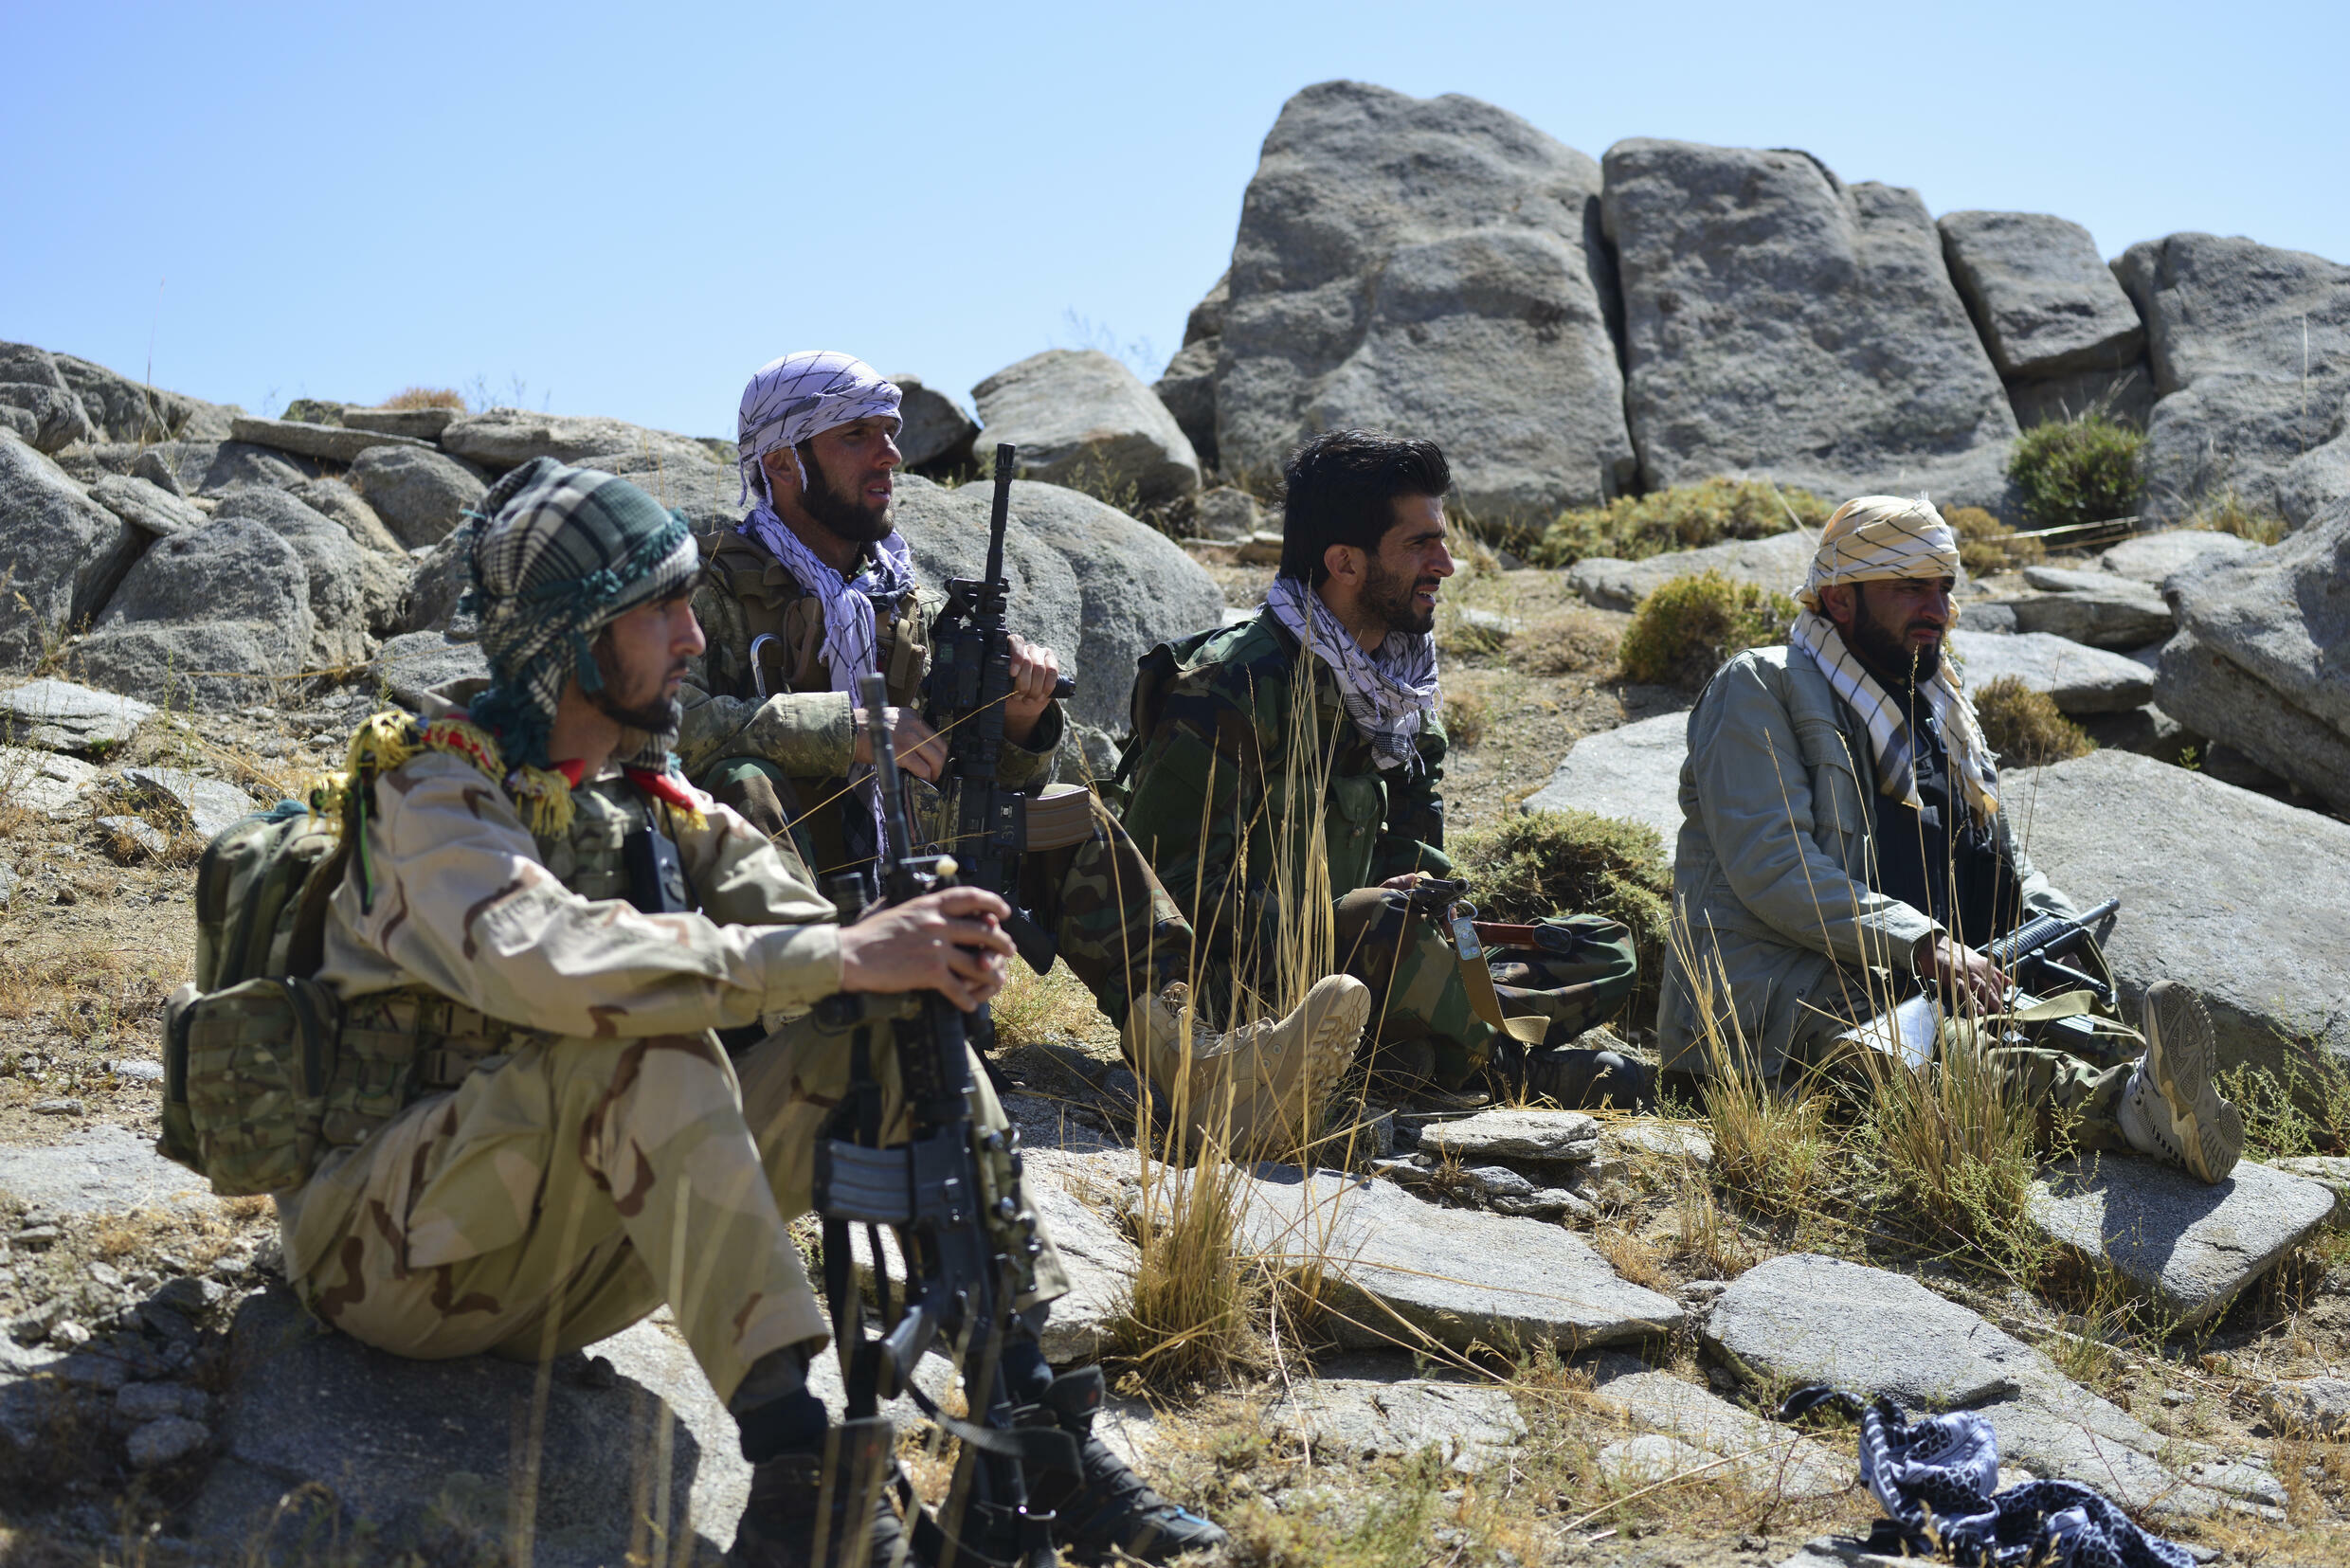 Afghanistan's last resistance group has called the Taliban's newly announced government 'illegitimate'